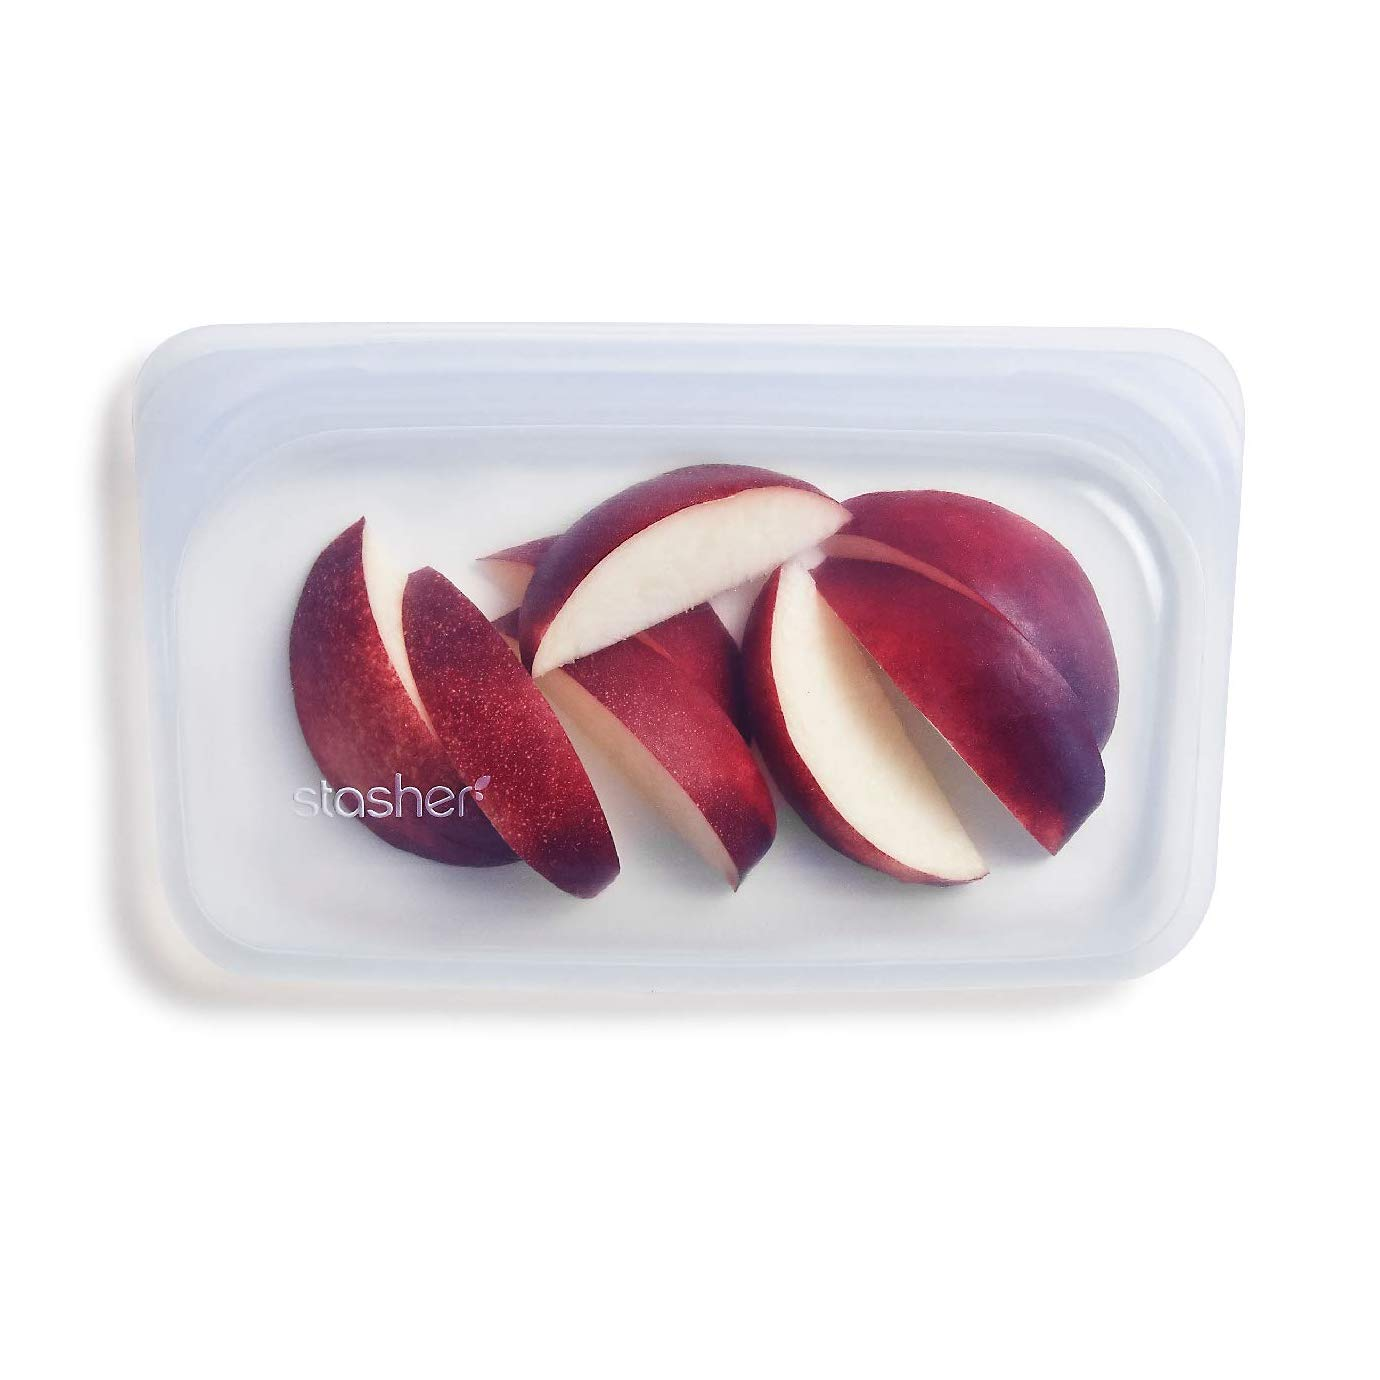 Stasher - Reusable Snack Size Bag (Clear) - This reusable silicone bag is honestly a must have in my kitchen! It truly is the perfect pouch size so you can easily pop it into your bag and bring your favourite snacks with you on the go. It's BPA, non-toxic and dishwasher safe and aside from using it for snacks, you can also cook in them, use them in the oven and freeze them!!